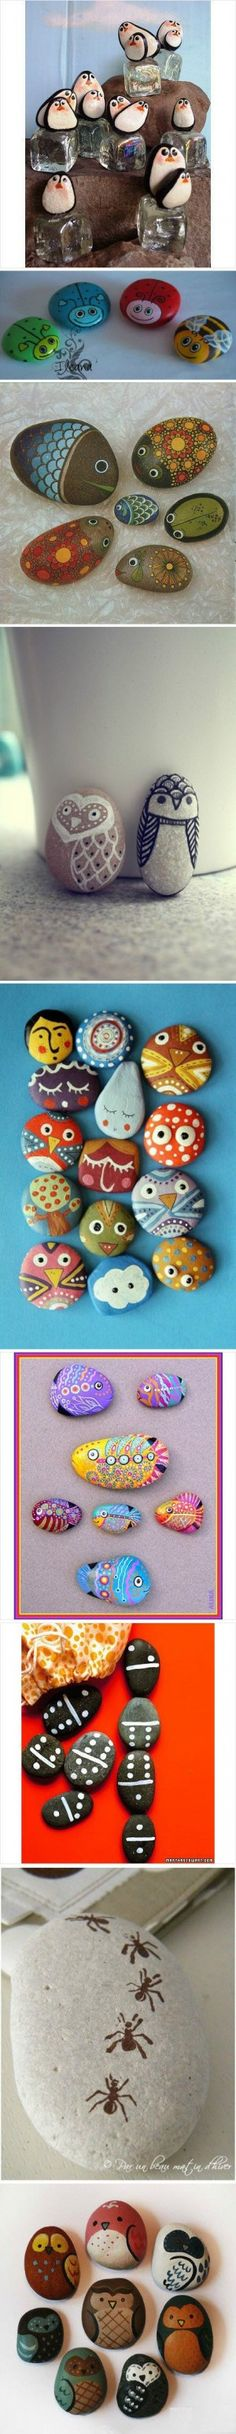 going to collect rocks now... Cute!